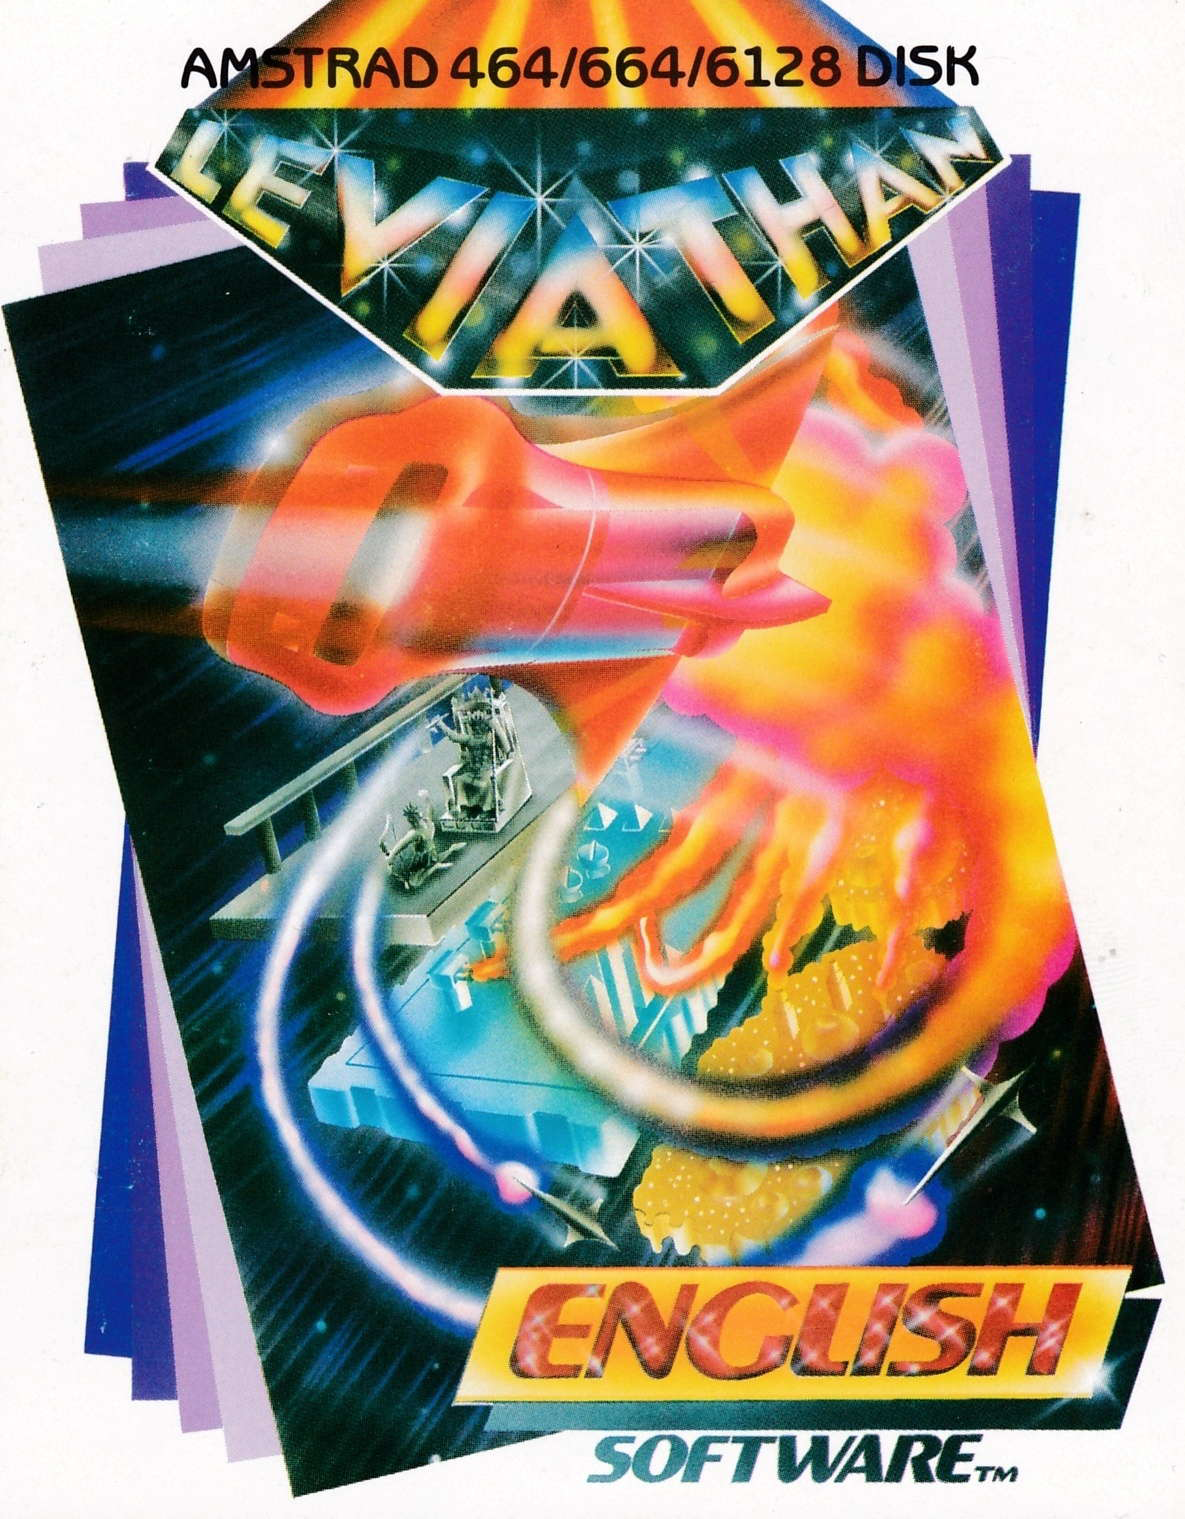 cover of the Amstrad CPC game Leviathan  by GameBase CPC